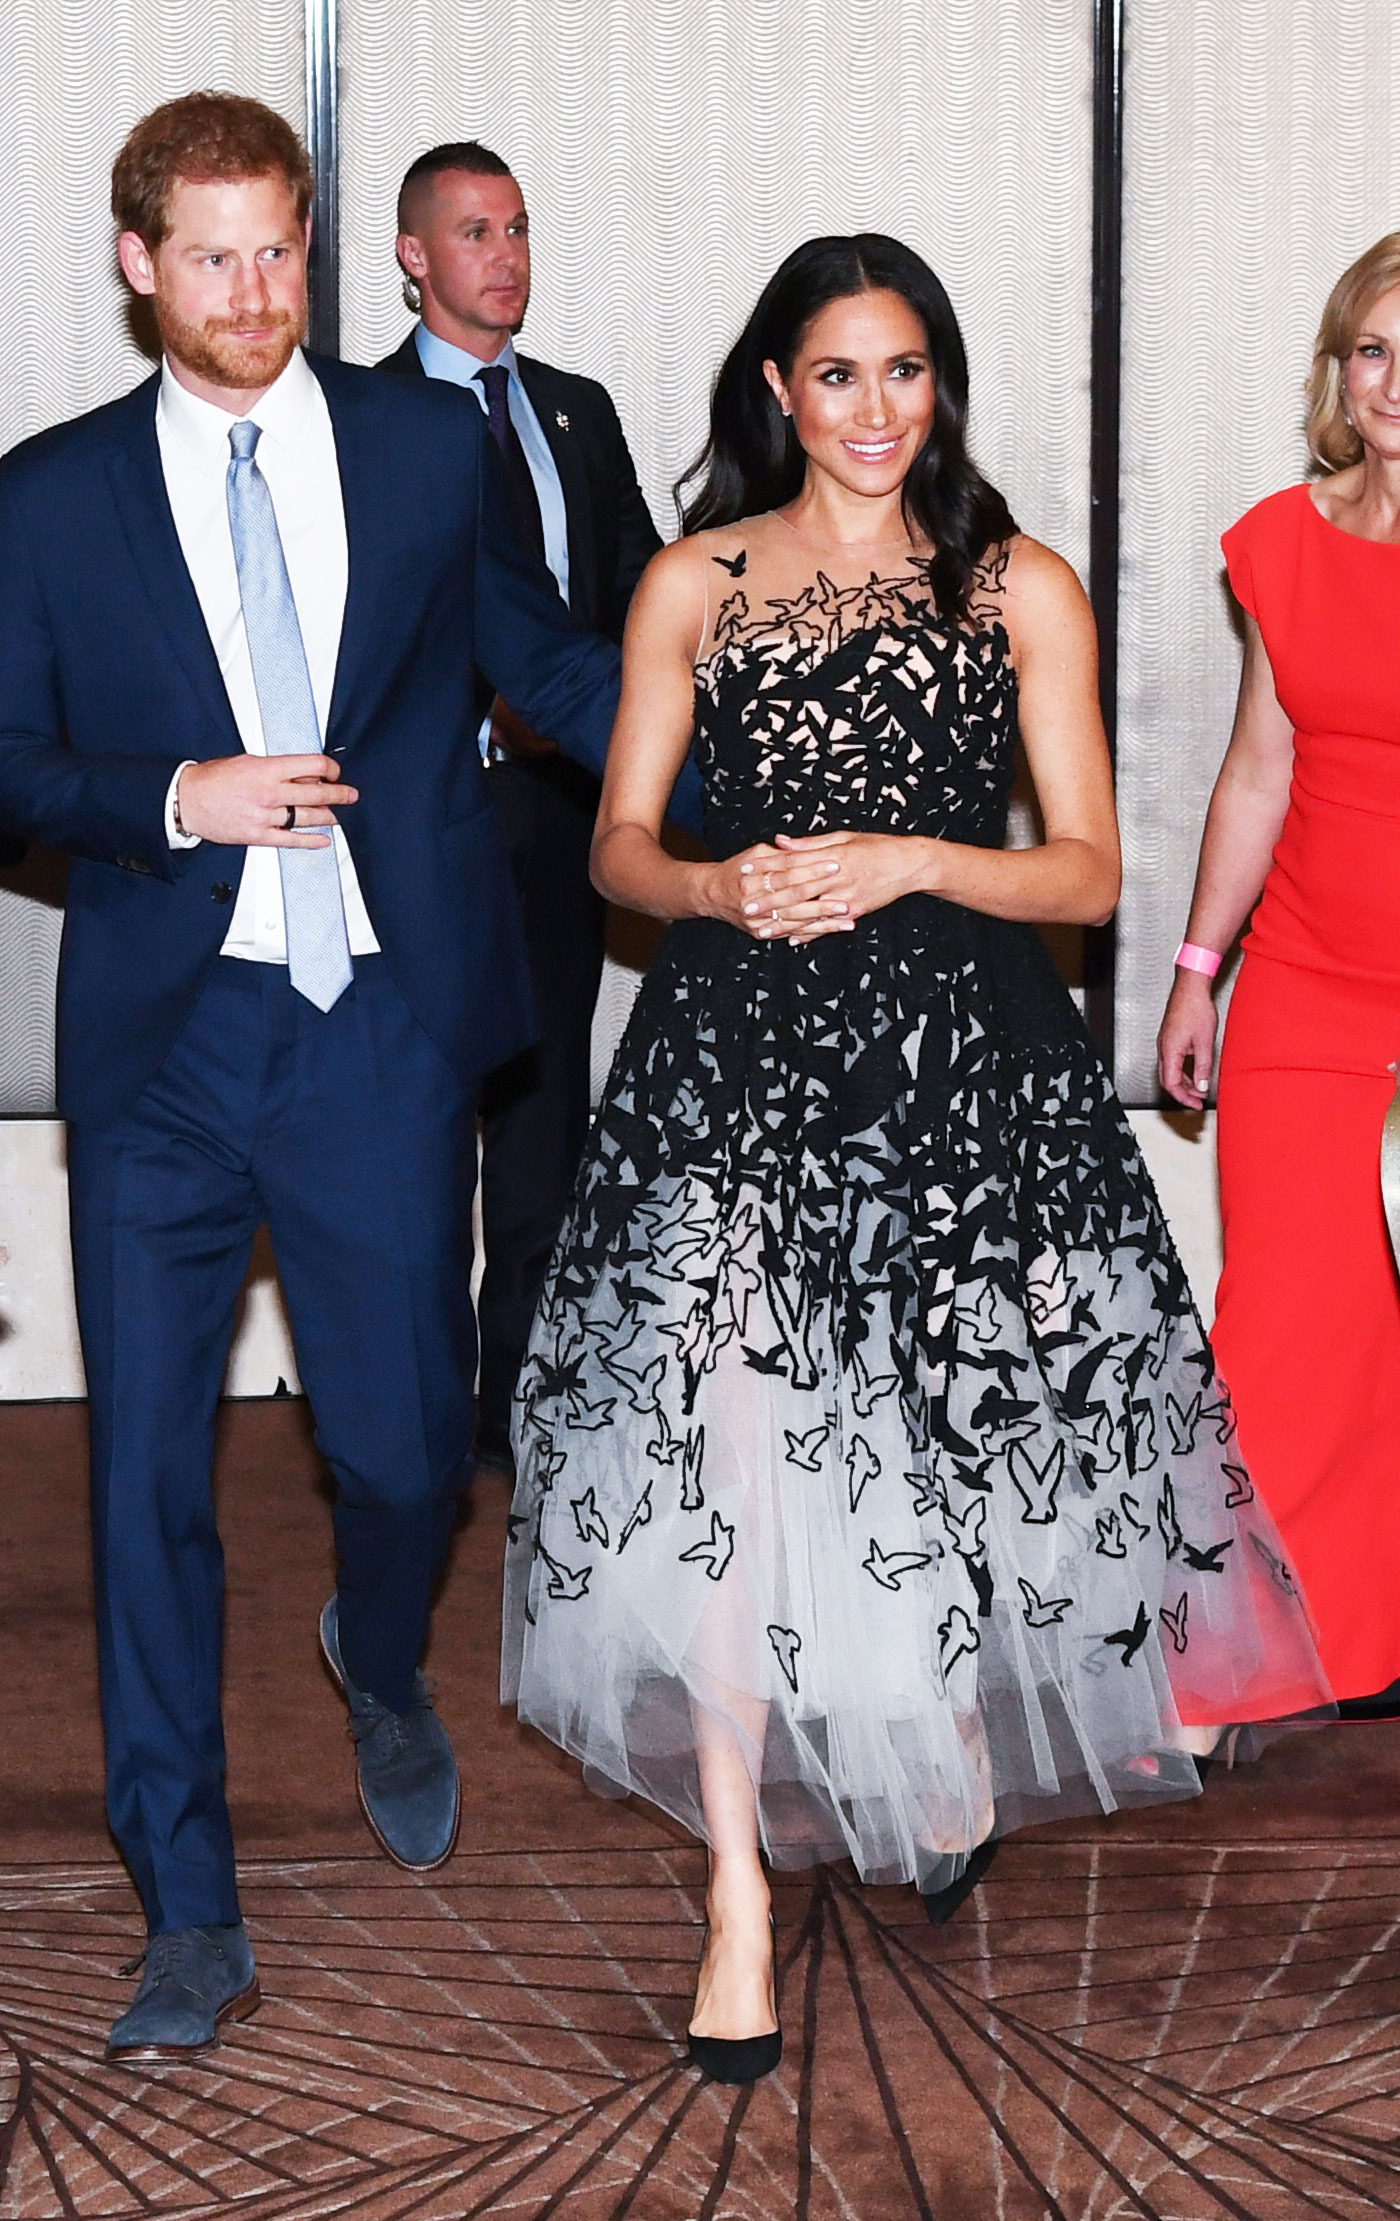 e8786b881b5f2 Meghan Markle's Best Style & Fashion Moments 2018